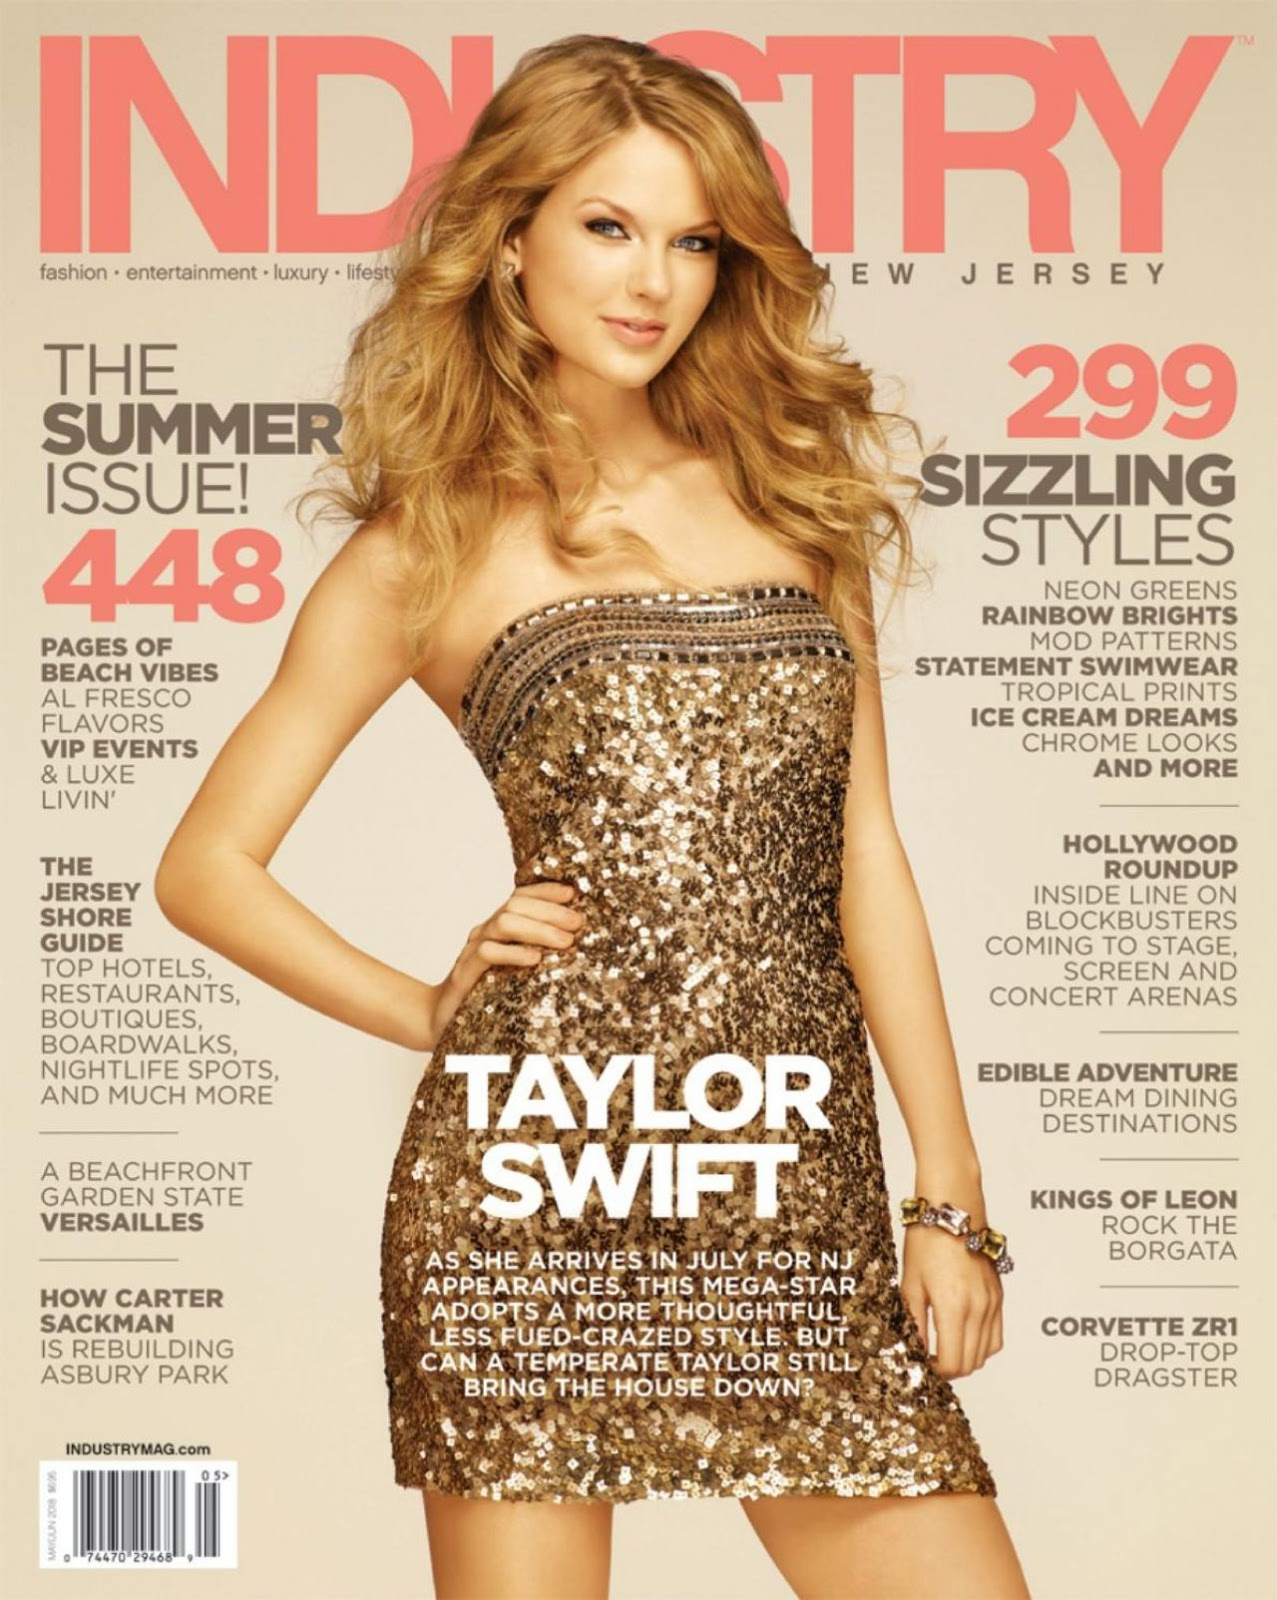 Taylor Swift – Industry New Jersey Magazine May/June 2018